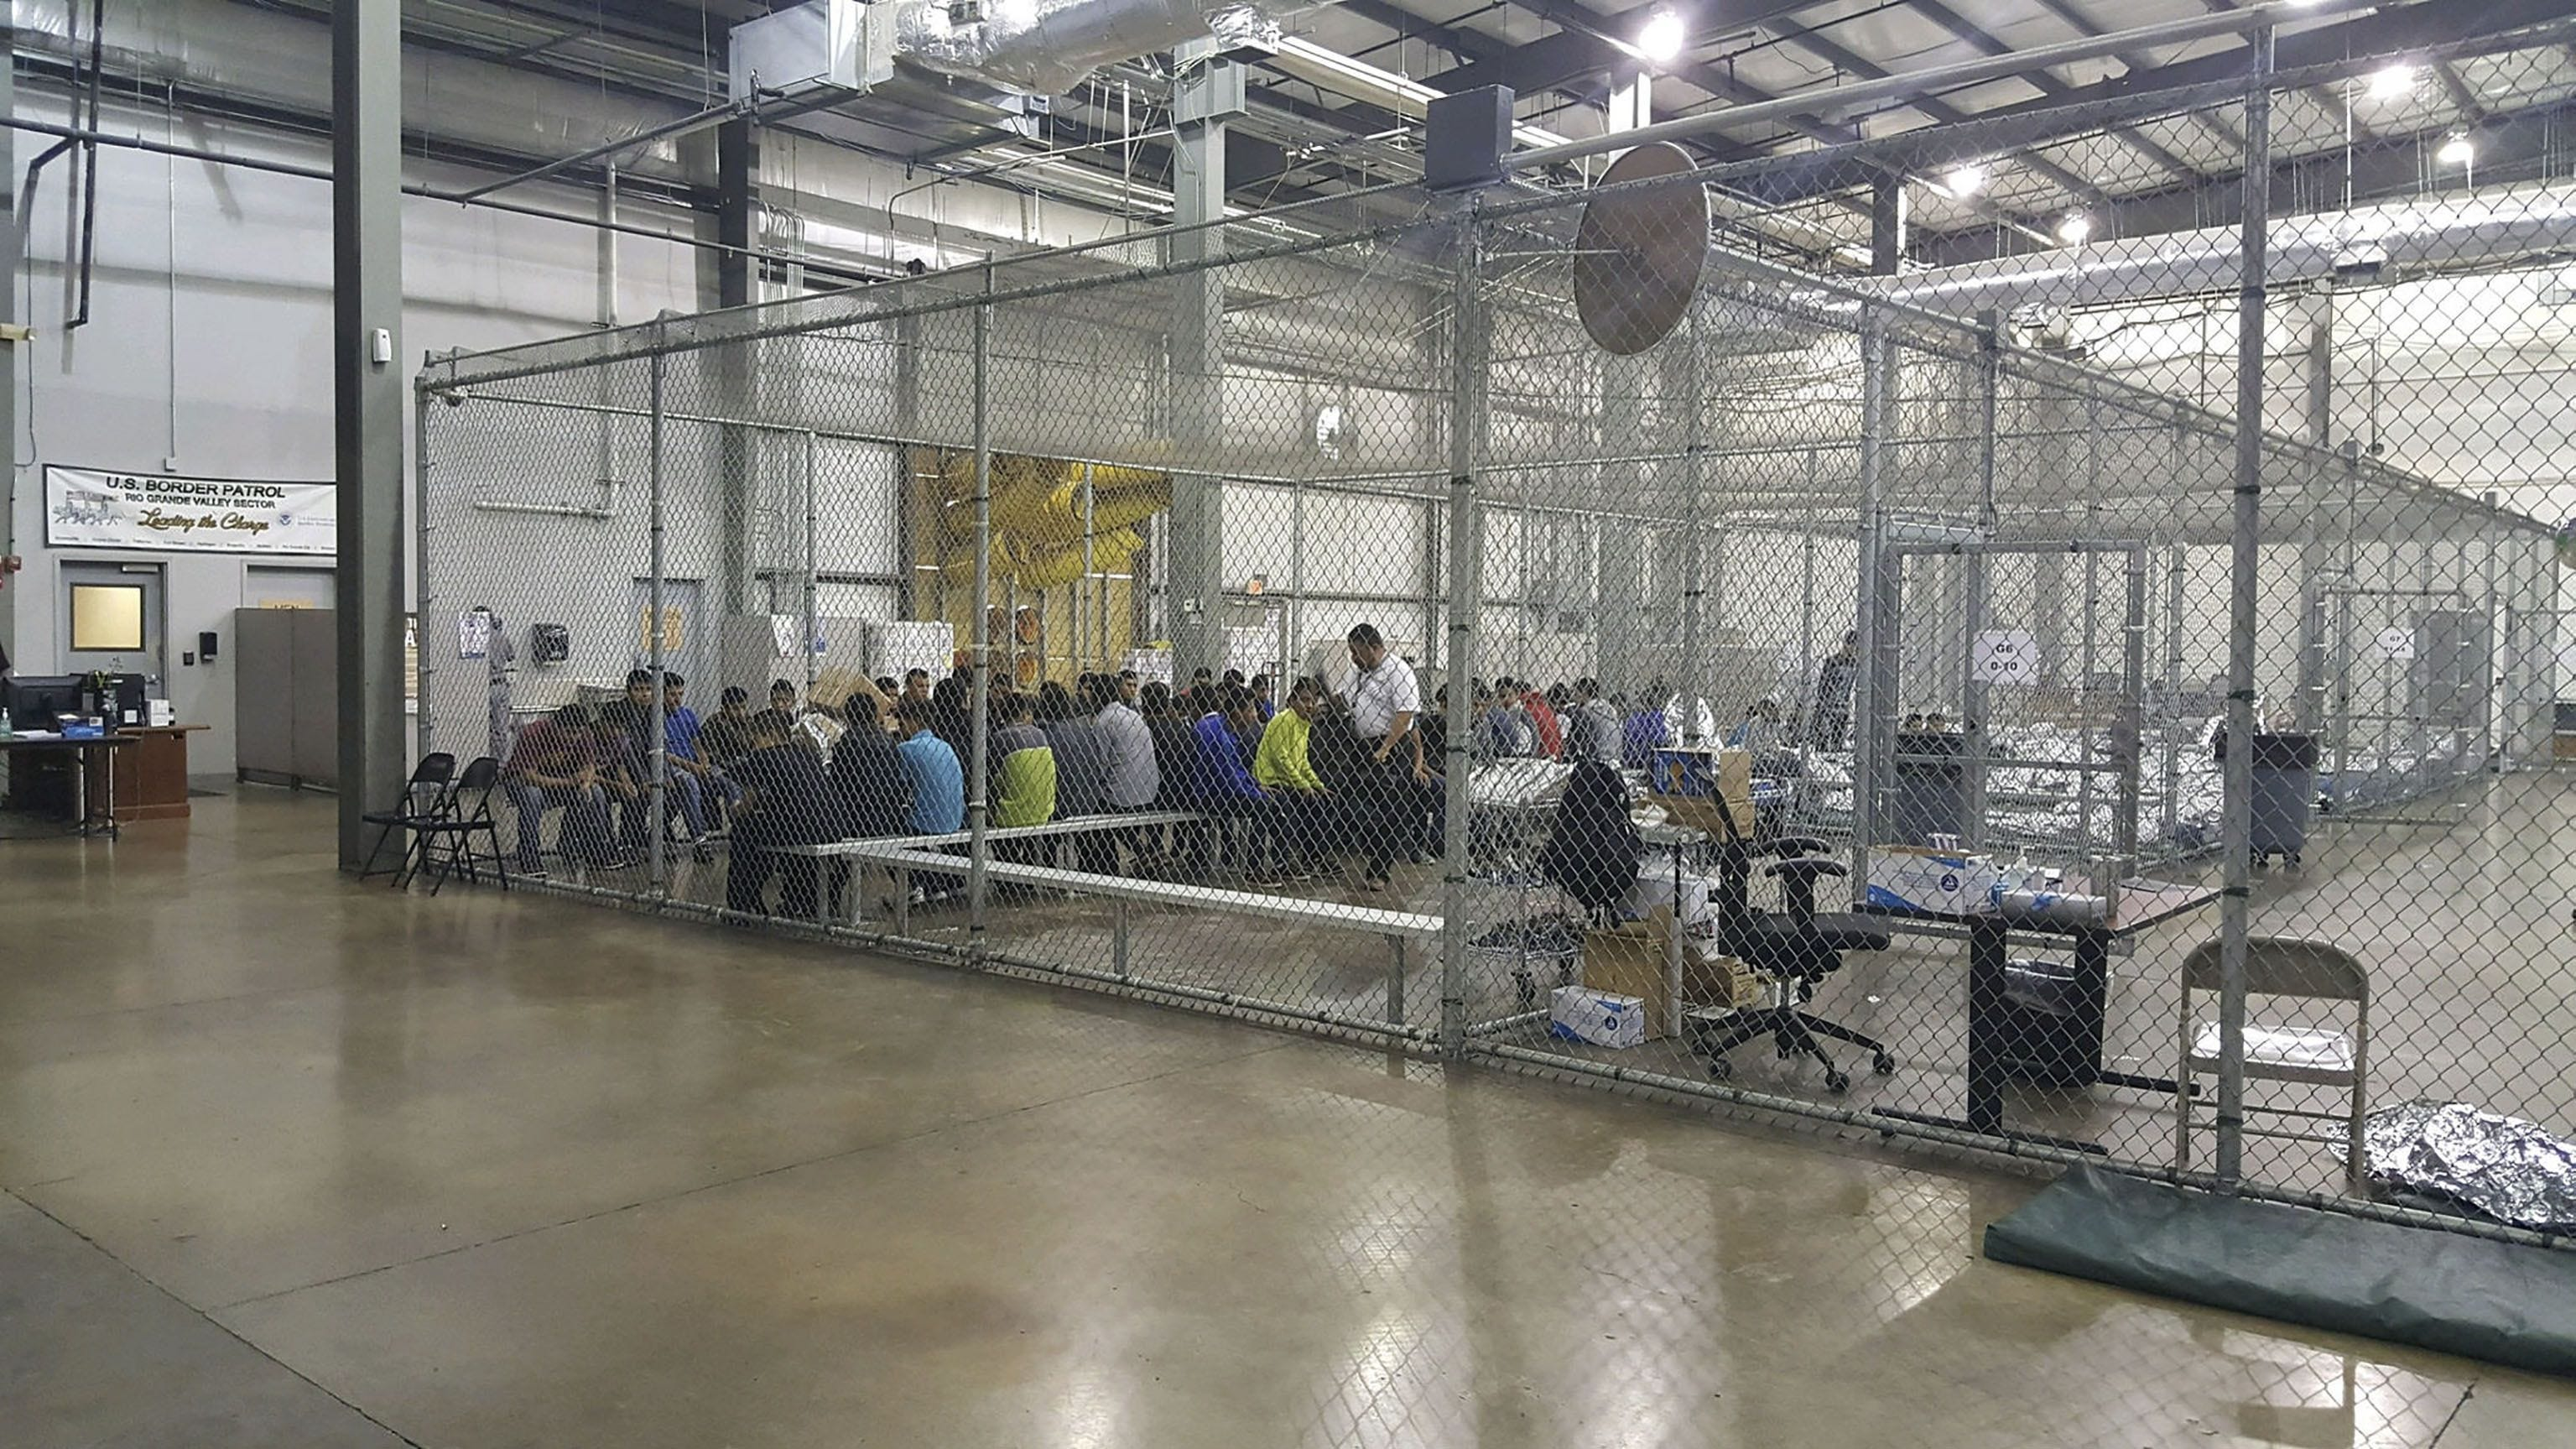 Fact check: What's really going on with immigrant children being detained at the border? | Burlington Free Press